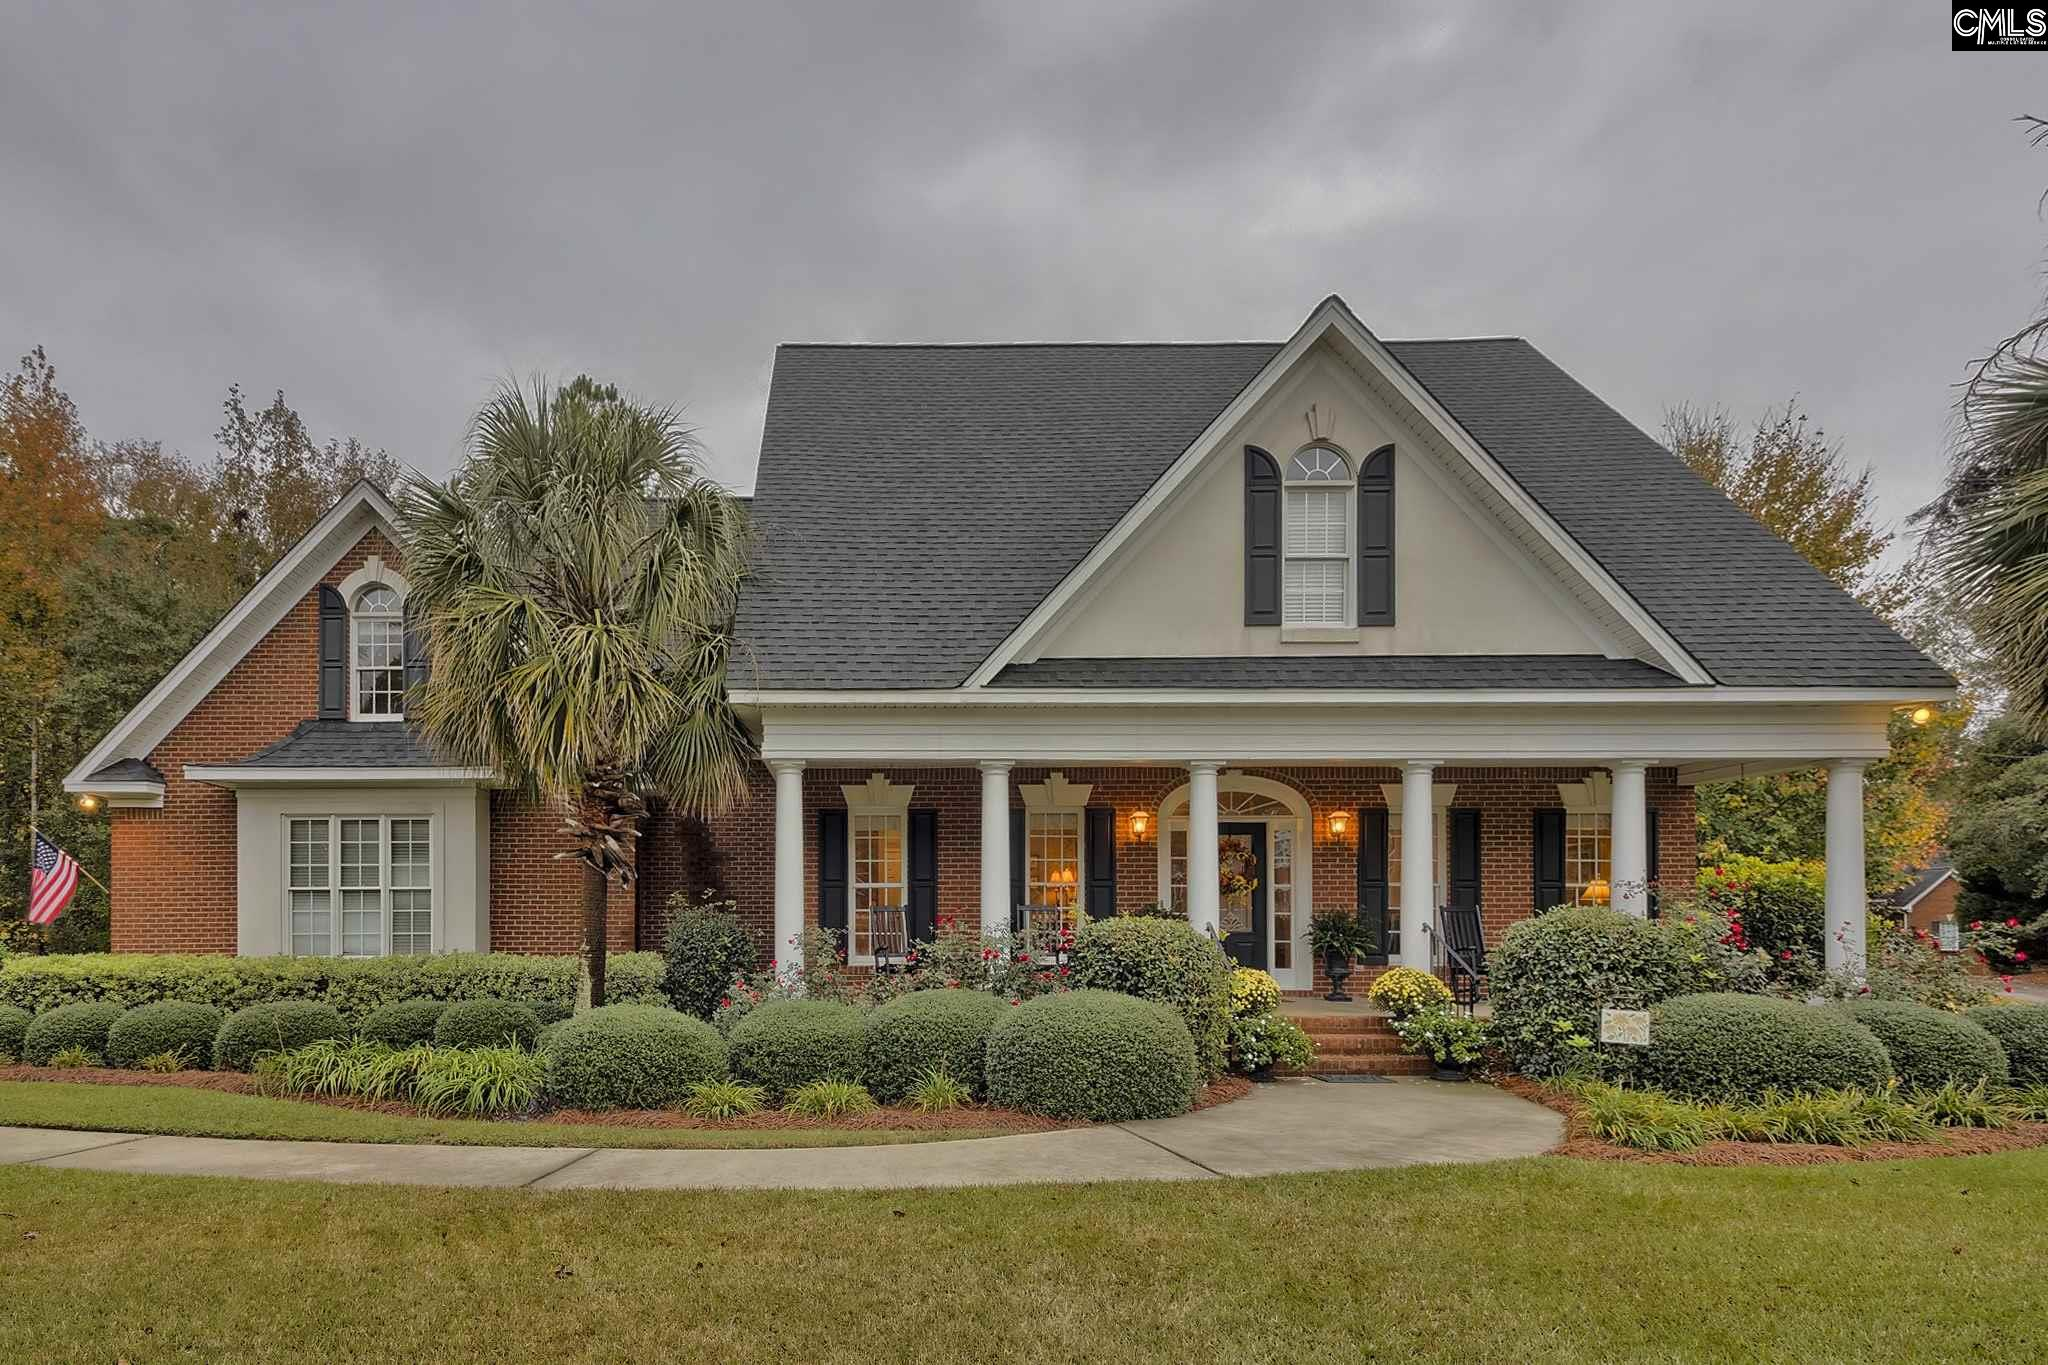 564 Charles Lexington, SC 29072